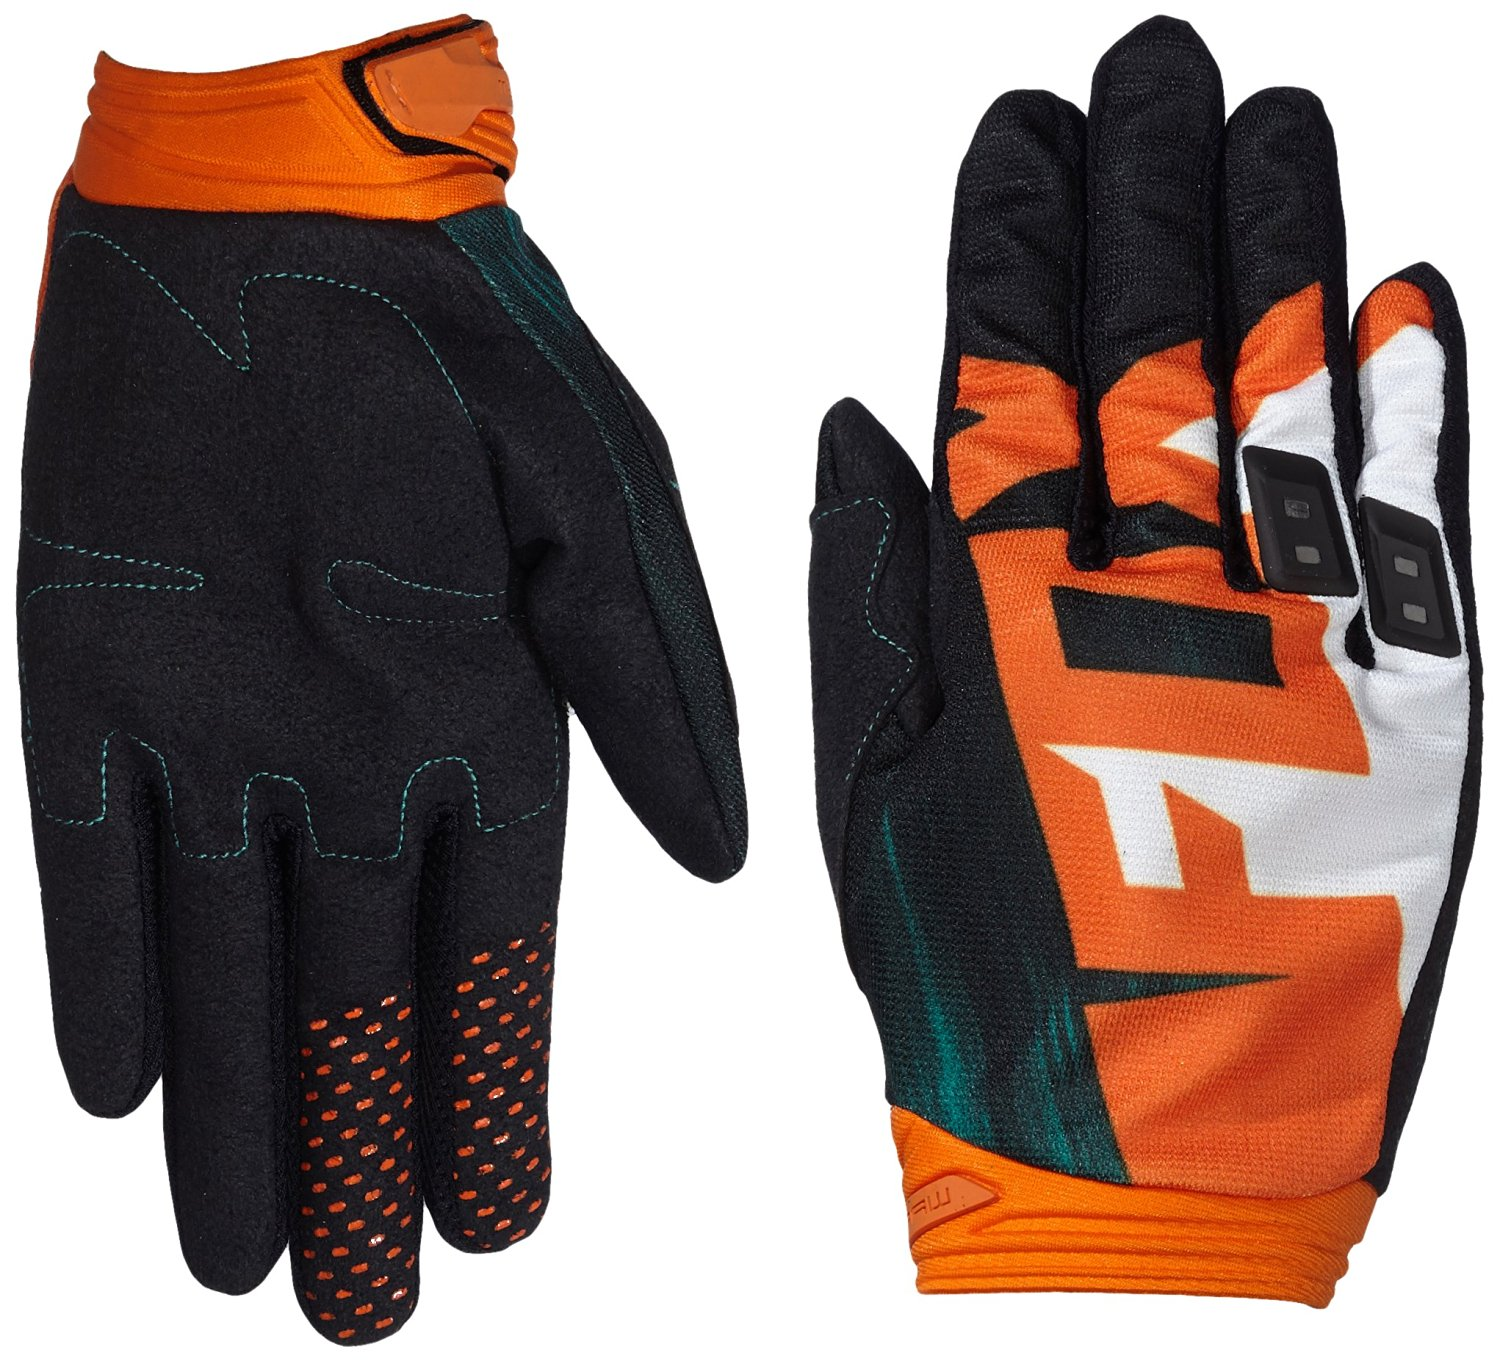 Fox Racing Dirtpaw Vandal Men's Off-Road Motorcycle Gloves - Green/Orange / 2X-Large